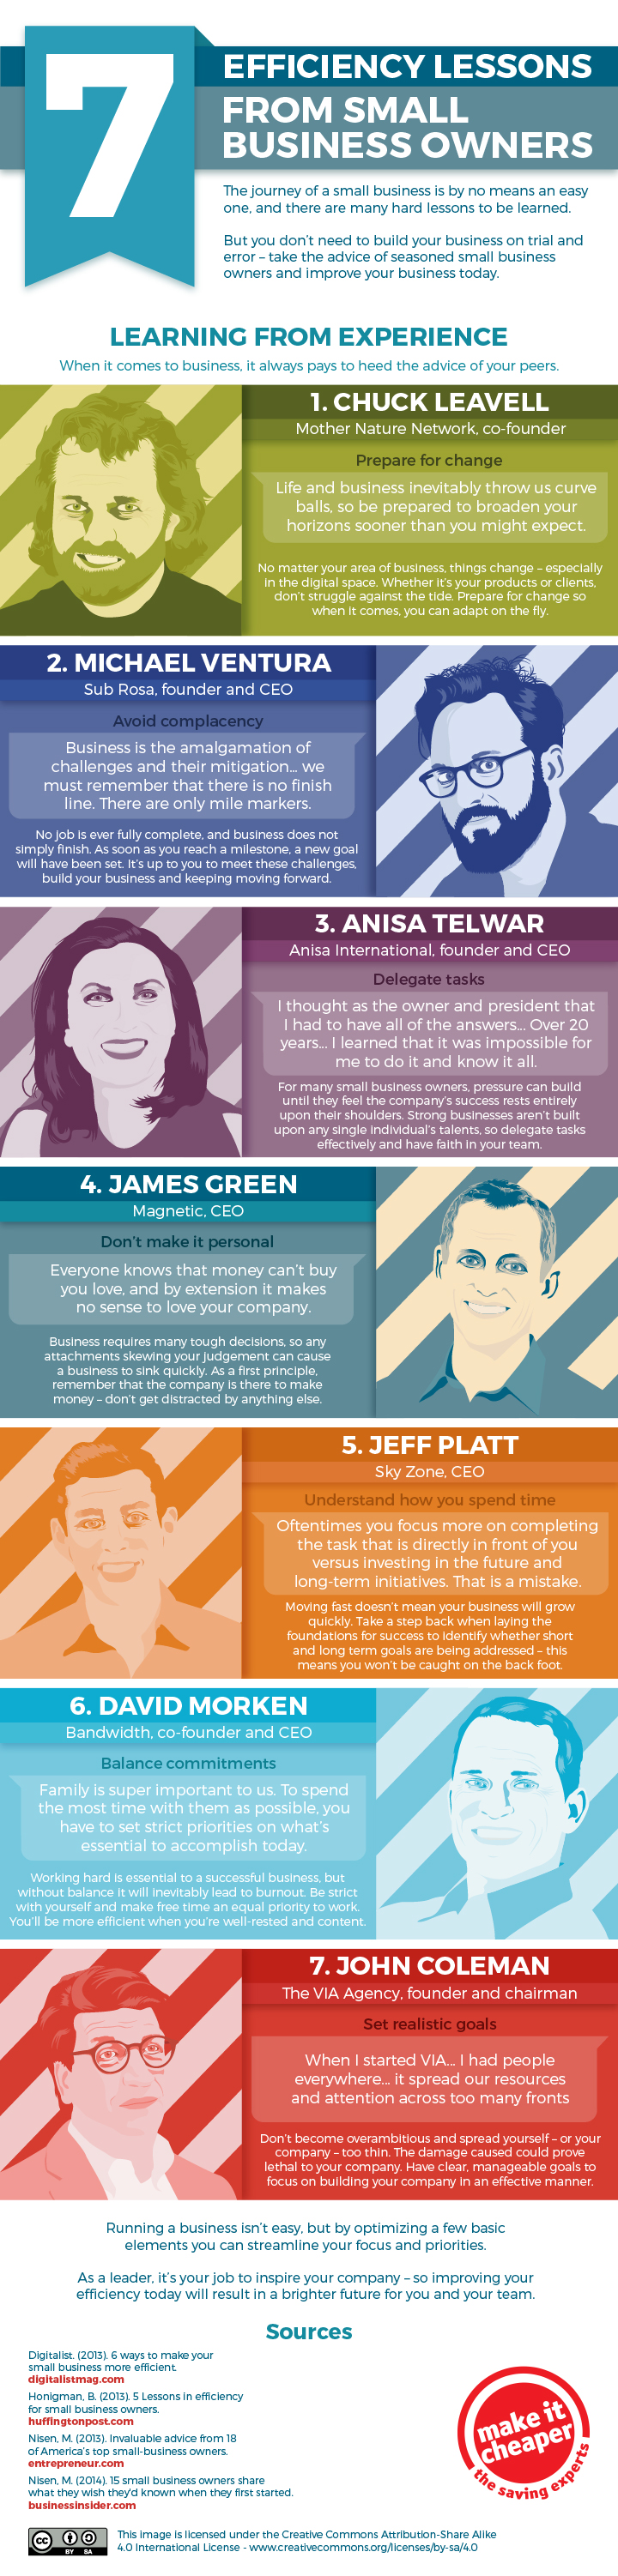 7-efficiency-lessons-from-small-business-owners